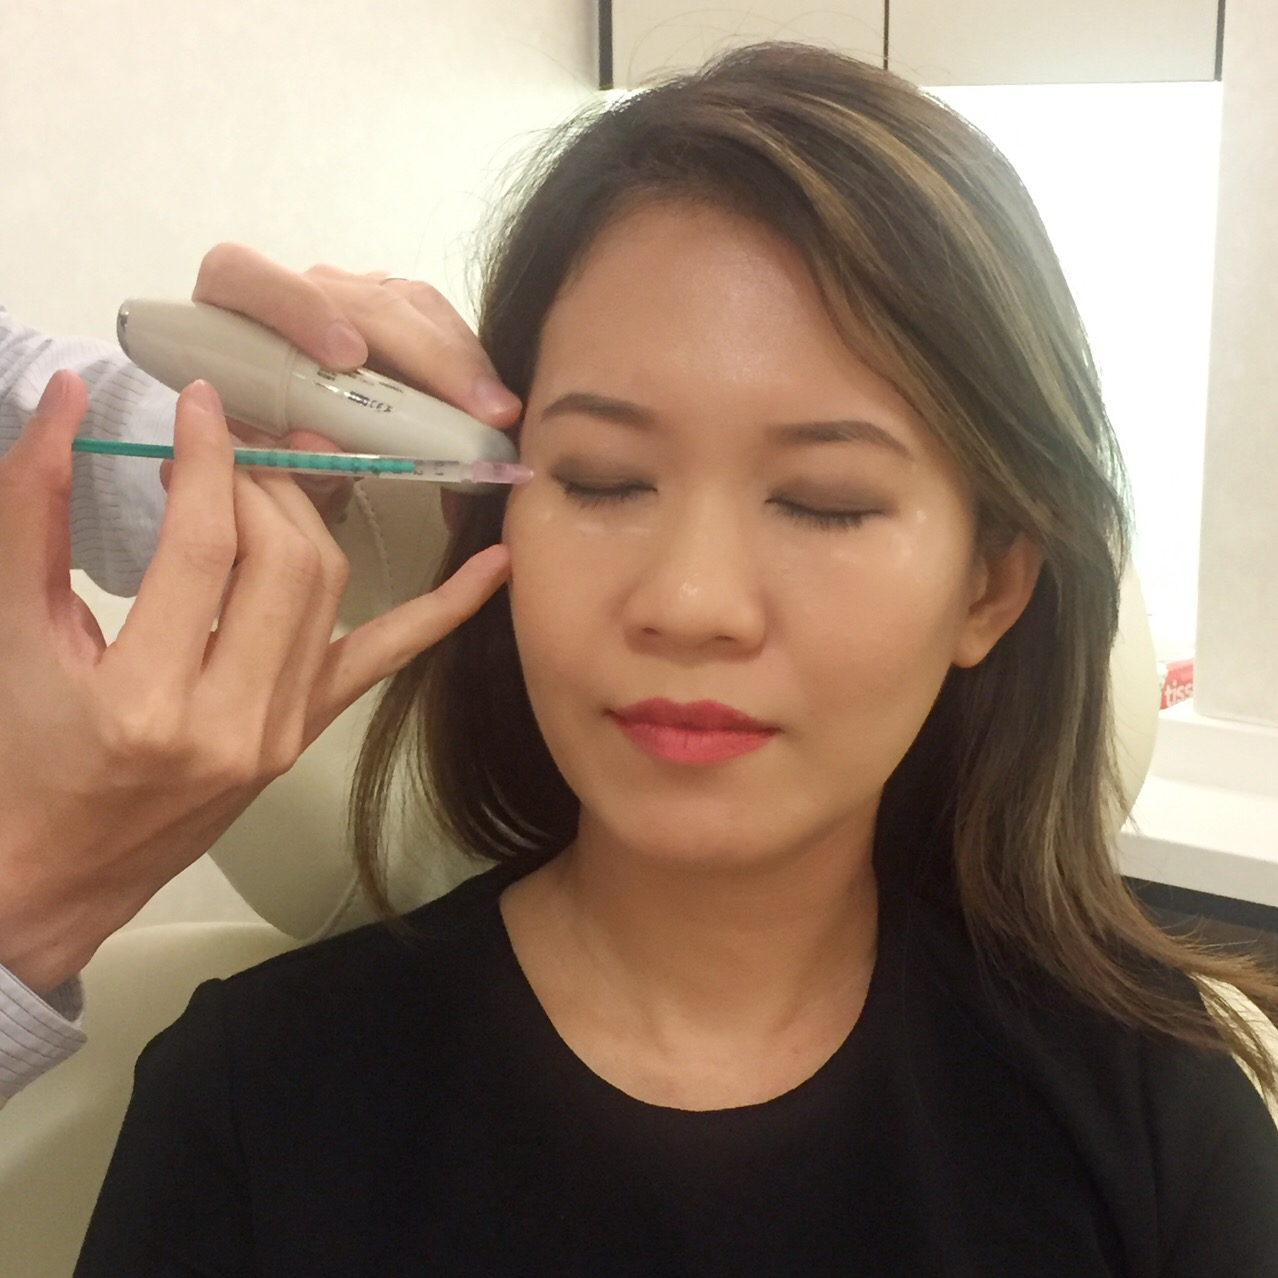 Dr Ee administering the Botox injections